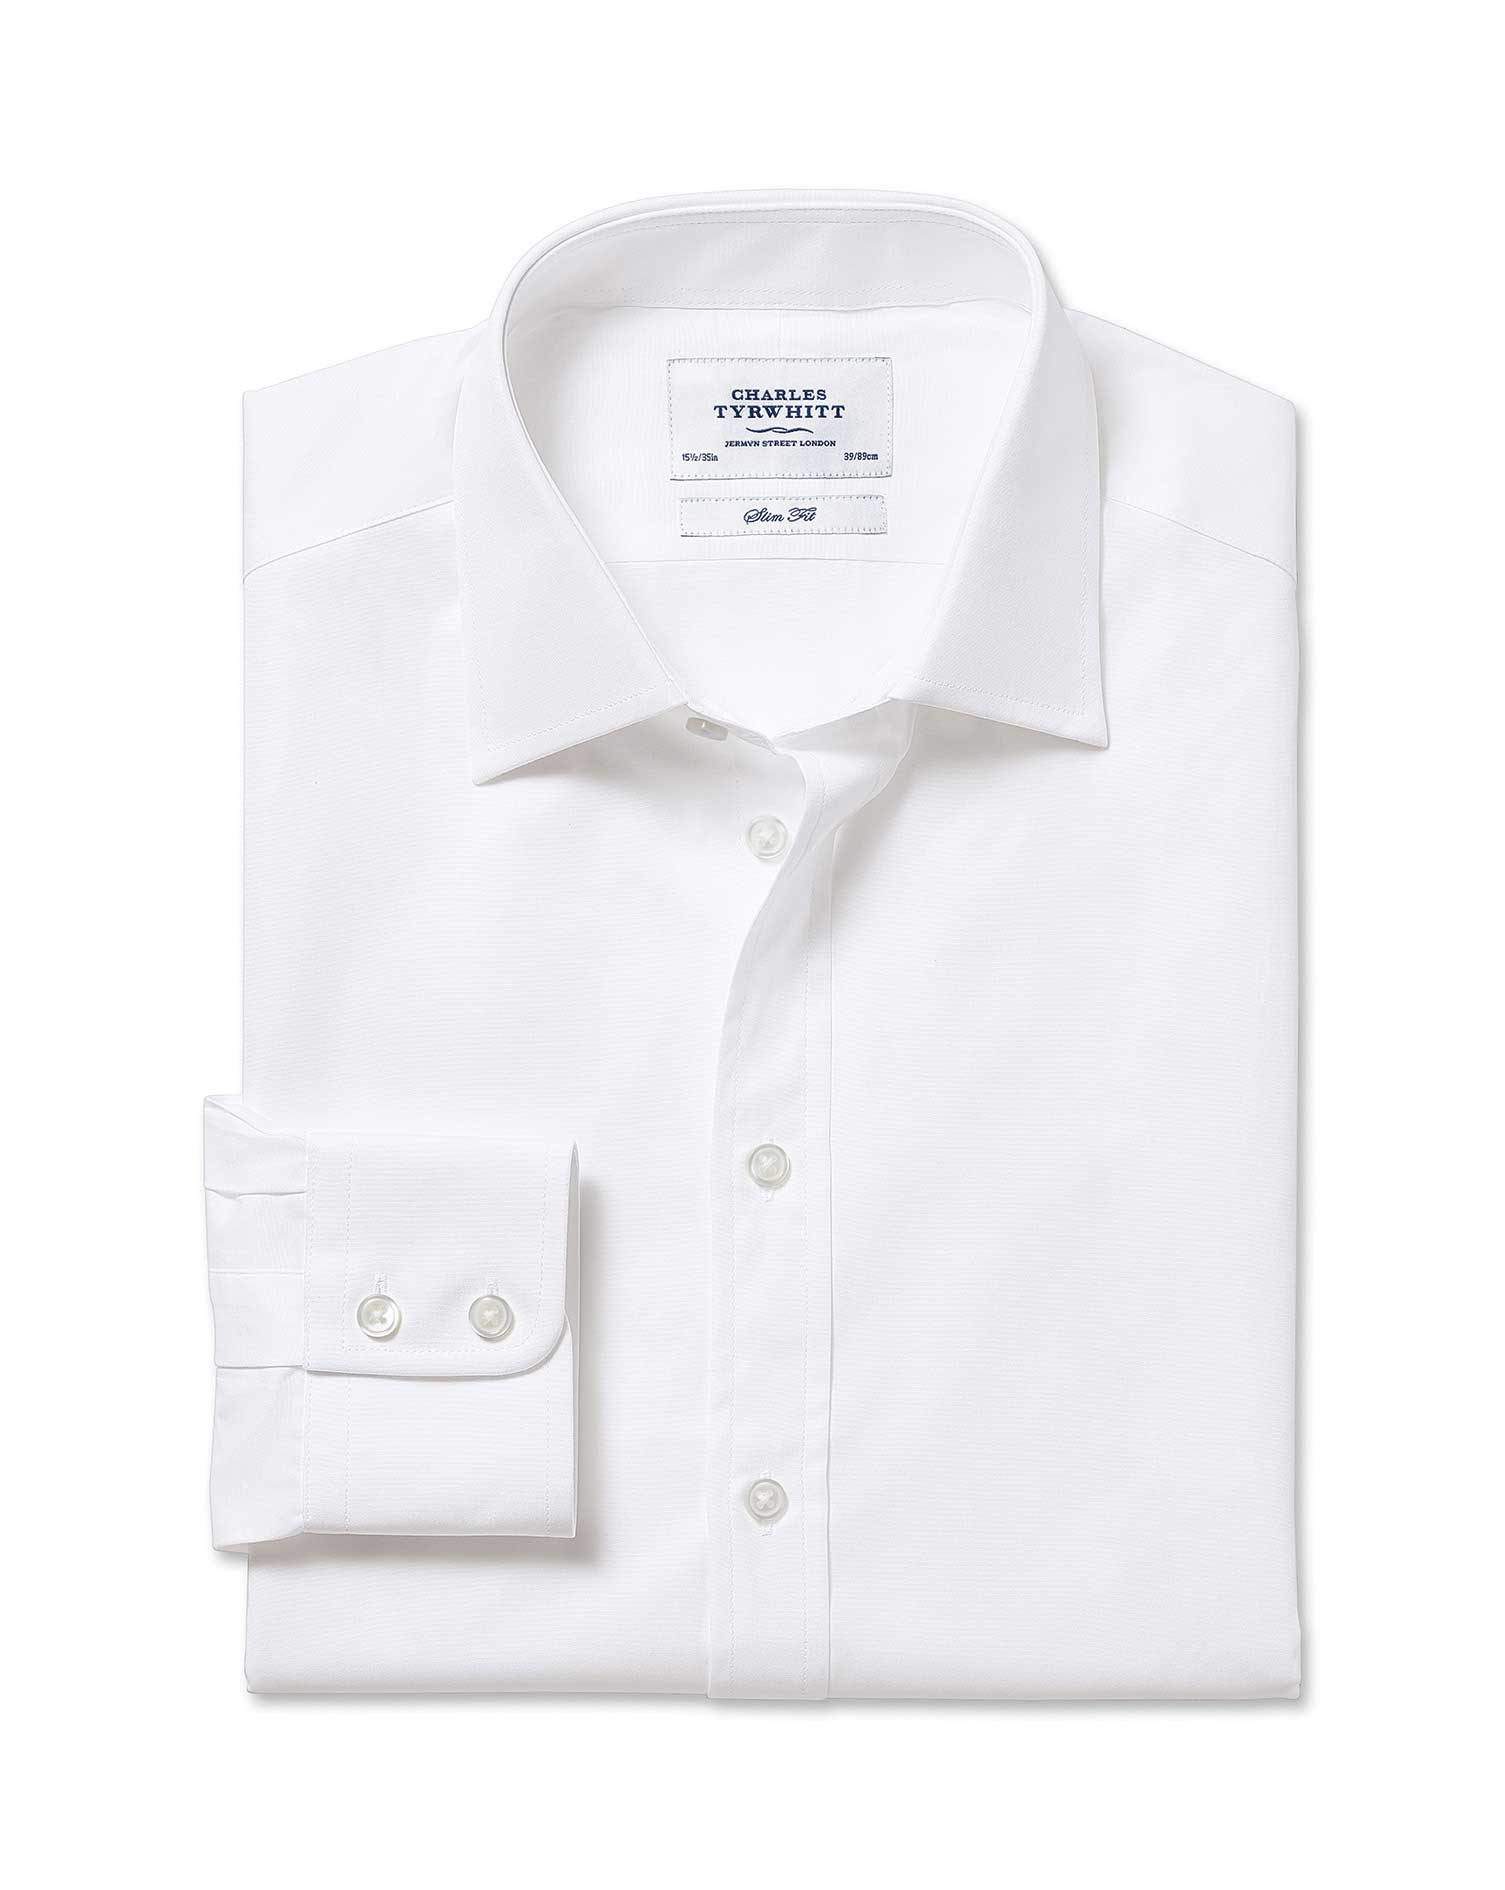 Classic Fit Egyptian Cotton Poplin White Formal Shirt Double Cuff Size 18/35 by Charles Tyrwhitt